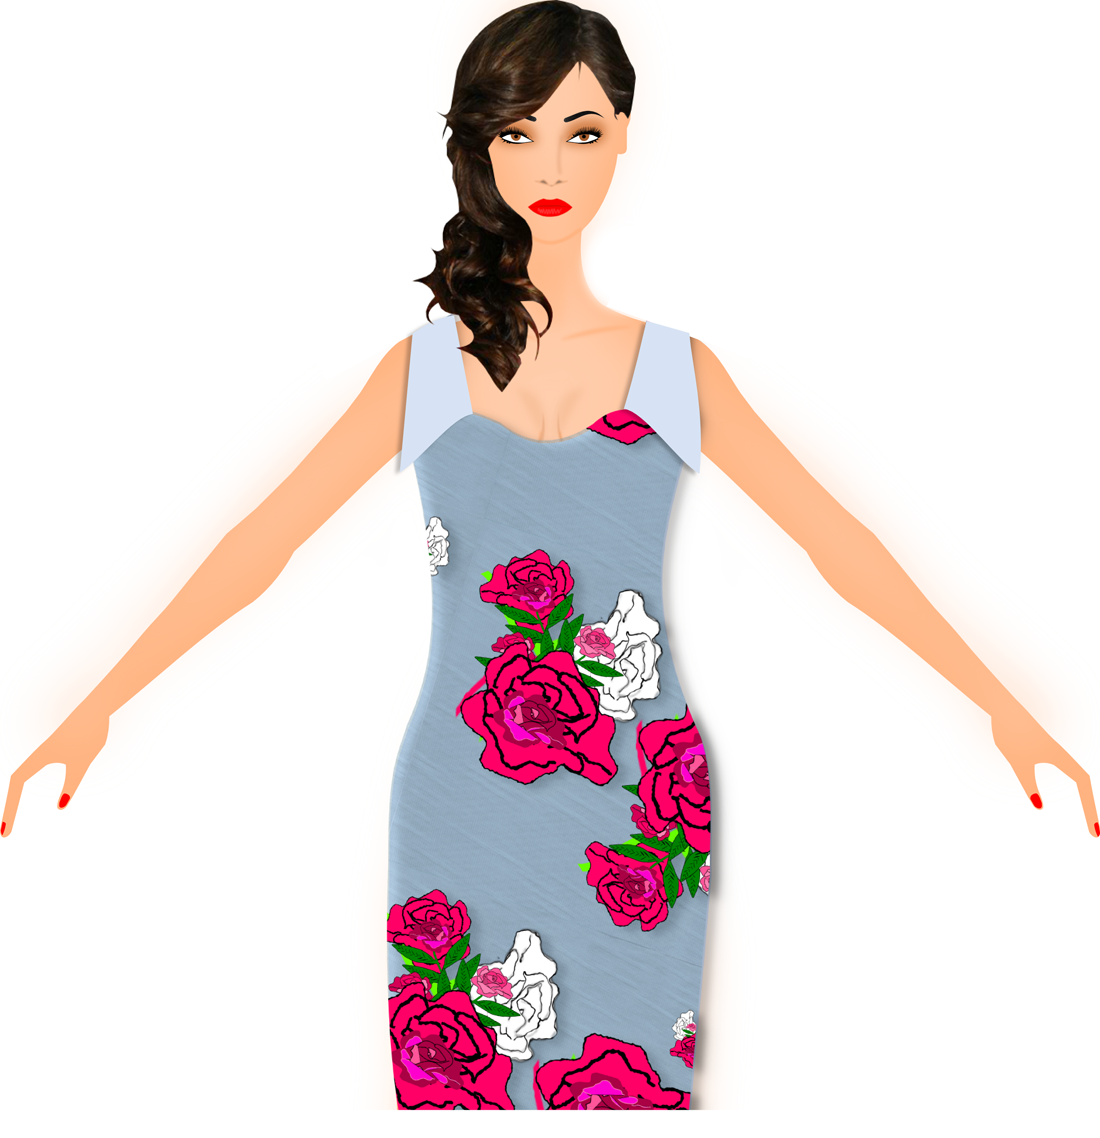 Model Wearing Floral Dress - 3dstyle - fashion design software - Digital Fashion Pro